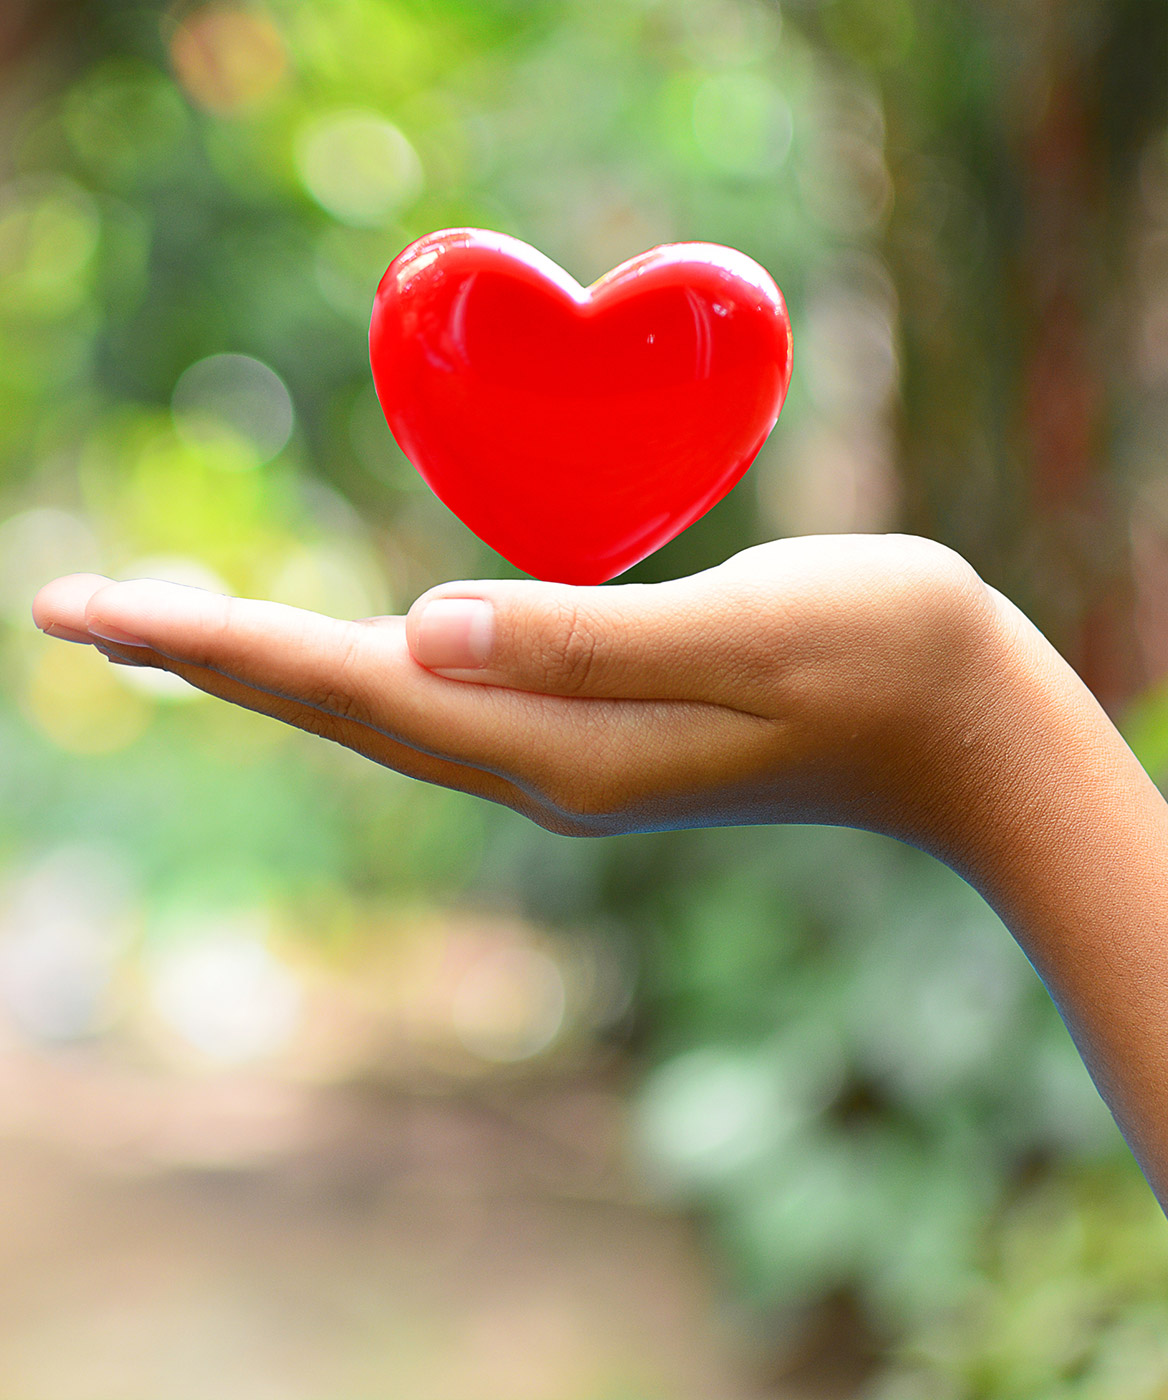 red plastic heart in girl's hand